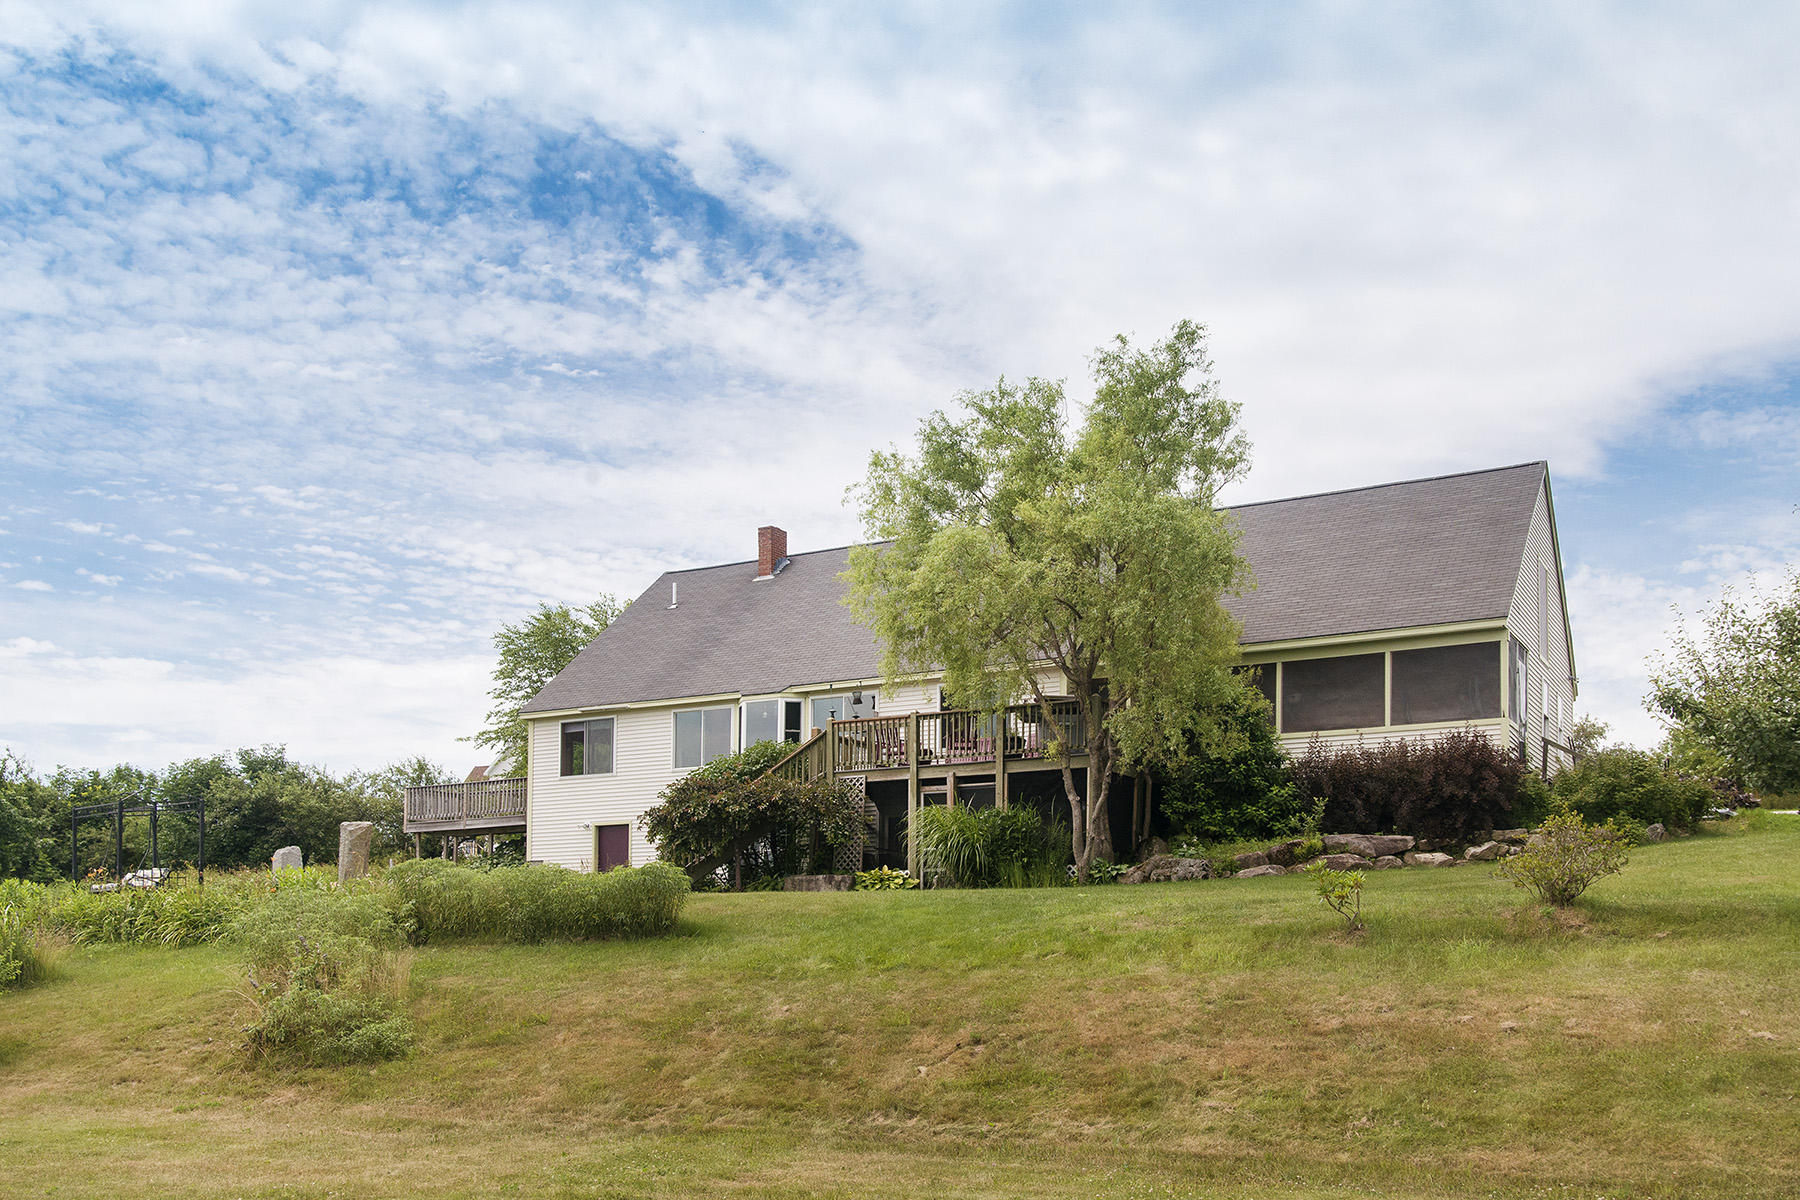 17 Orchard View Dr, Waterford, ME 04088